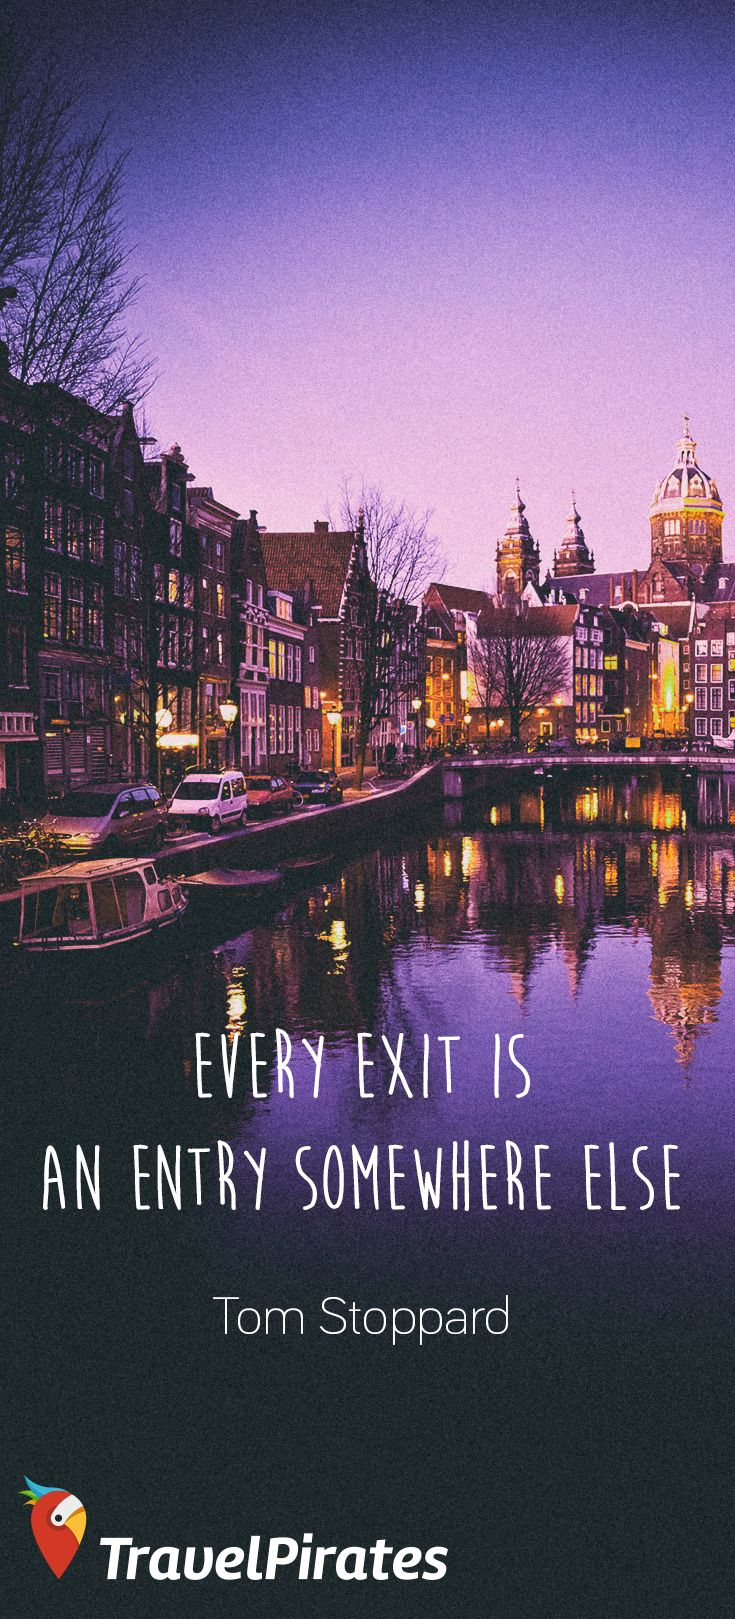 Amsterdam Quotes Extraordinary 49 Best Travel Quotes ⭐ Images On Pinterest  Journey Quotes